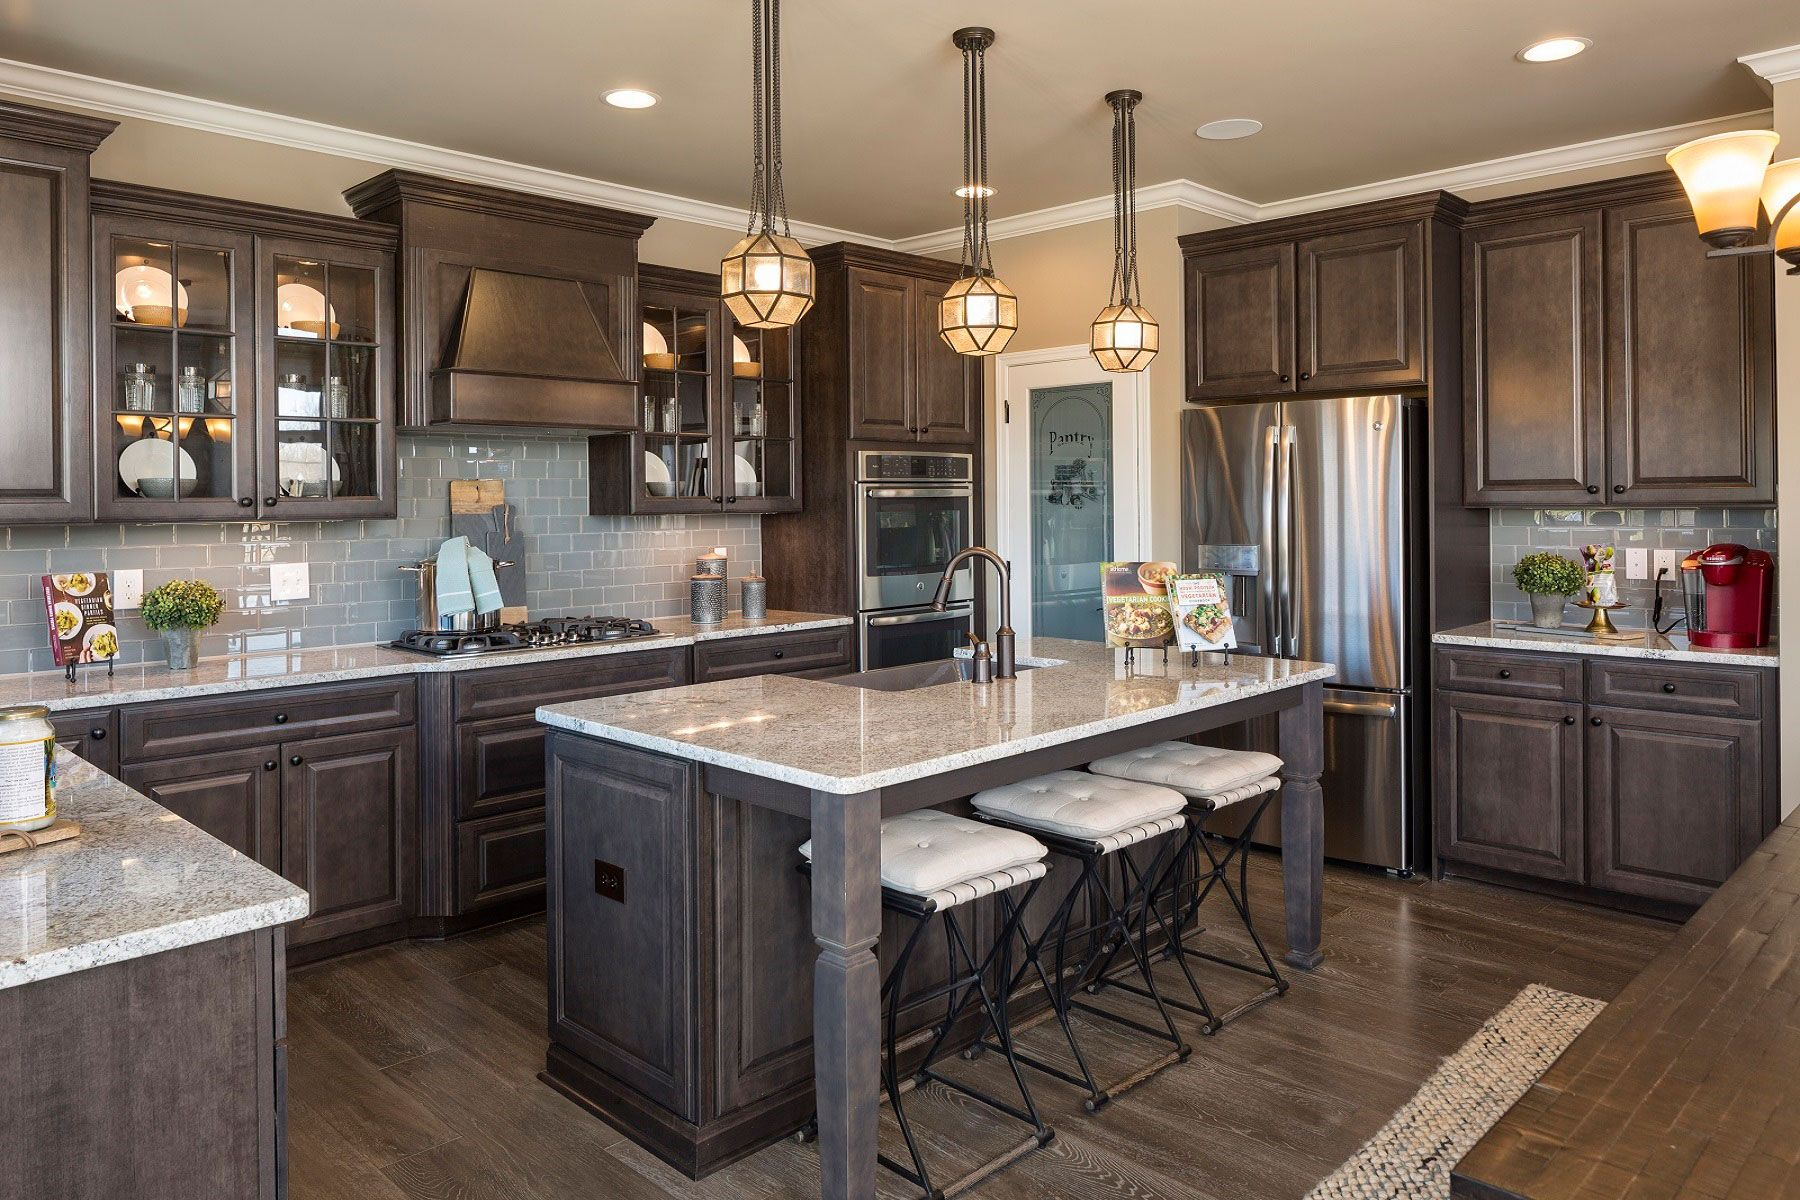 Pin By Donaria Albuquerque On Home In 2020 Home Decor Kitchen Kitchen Remodel Small Home Kitchens